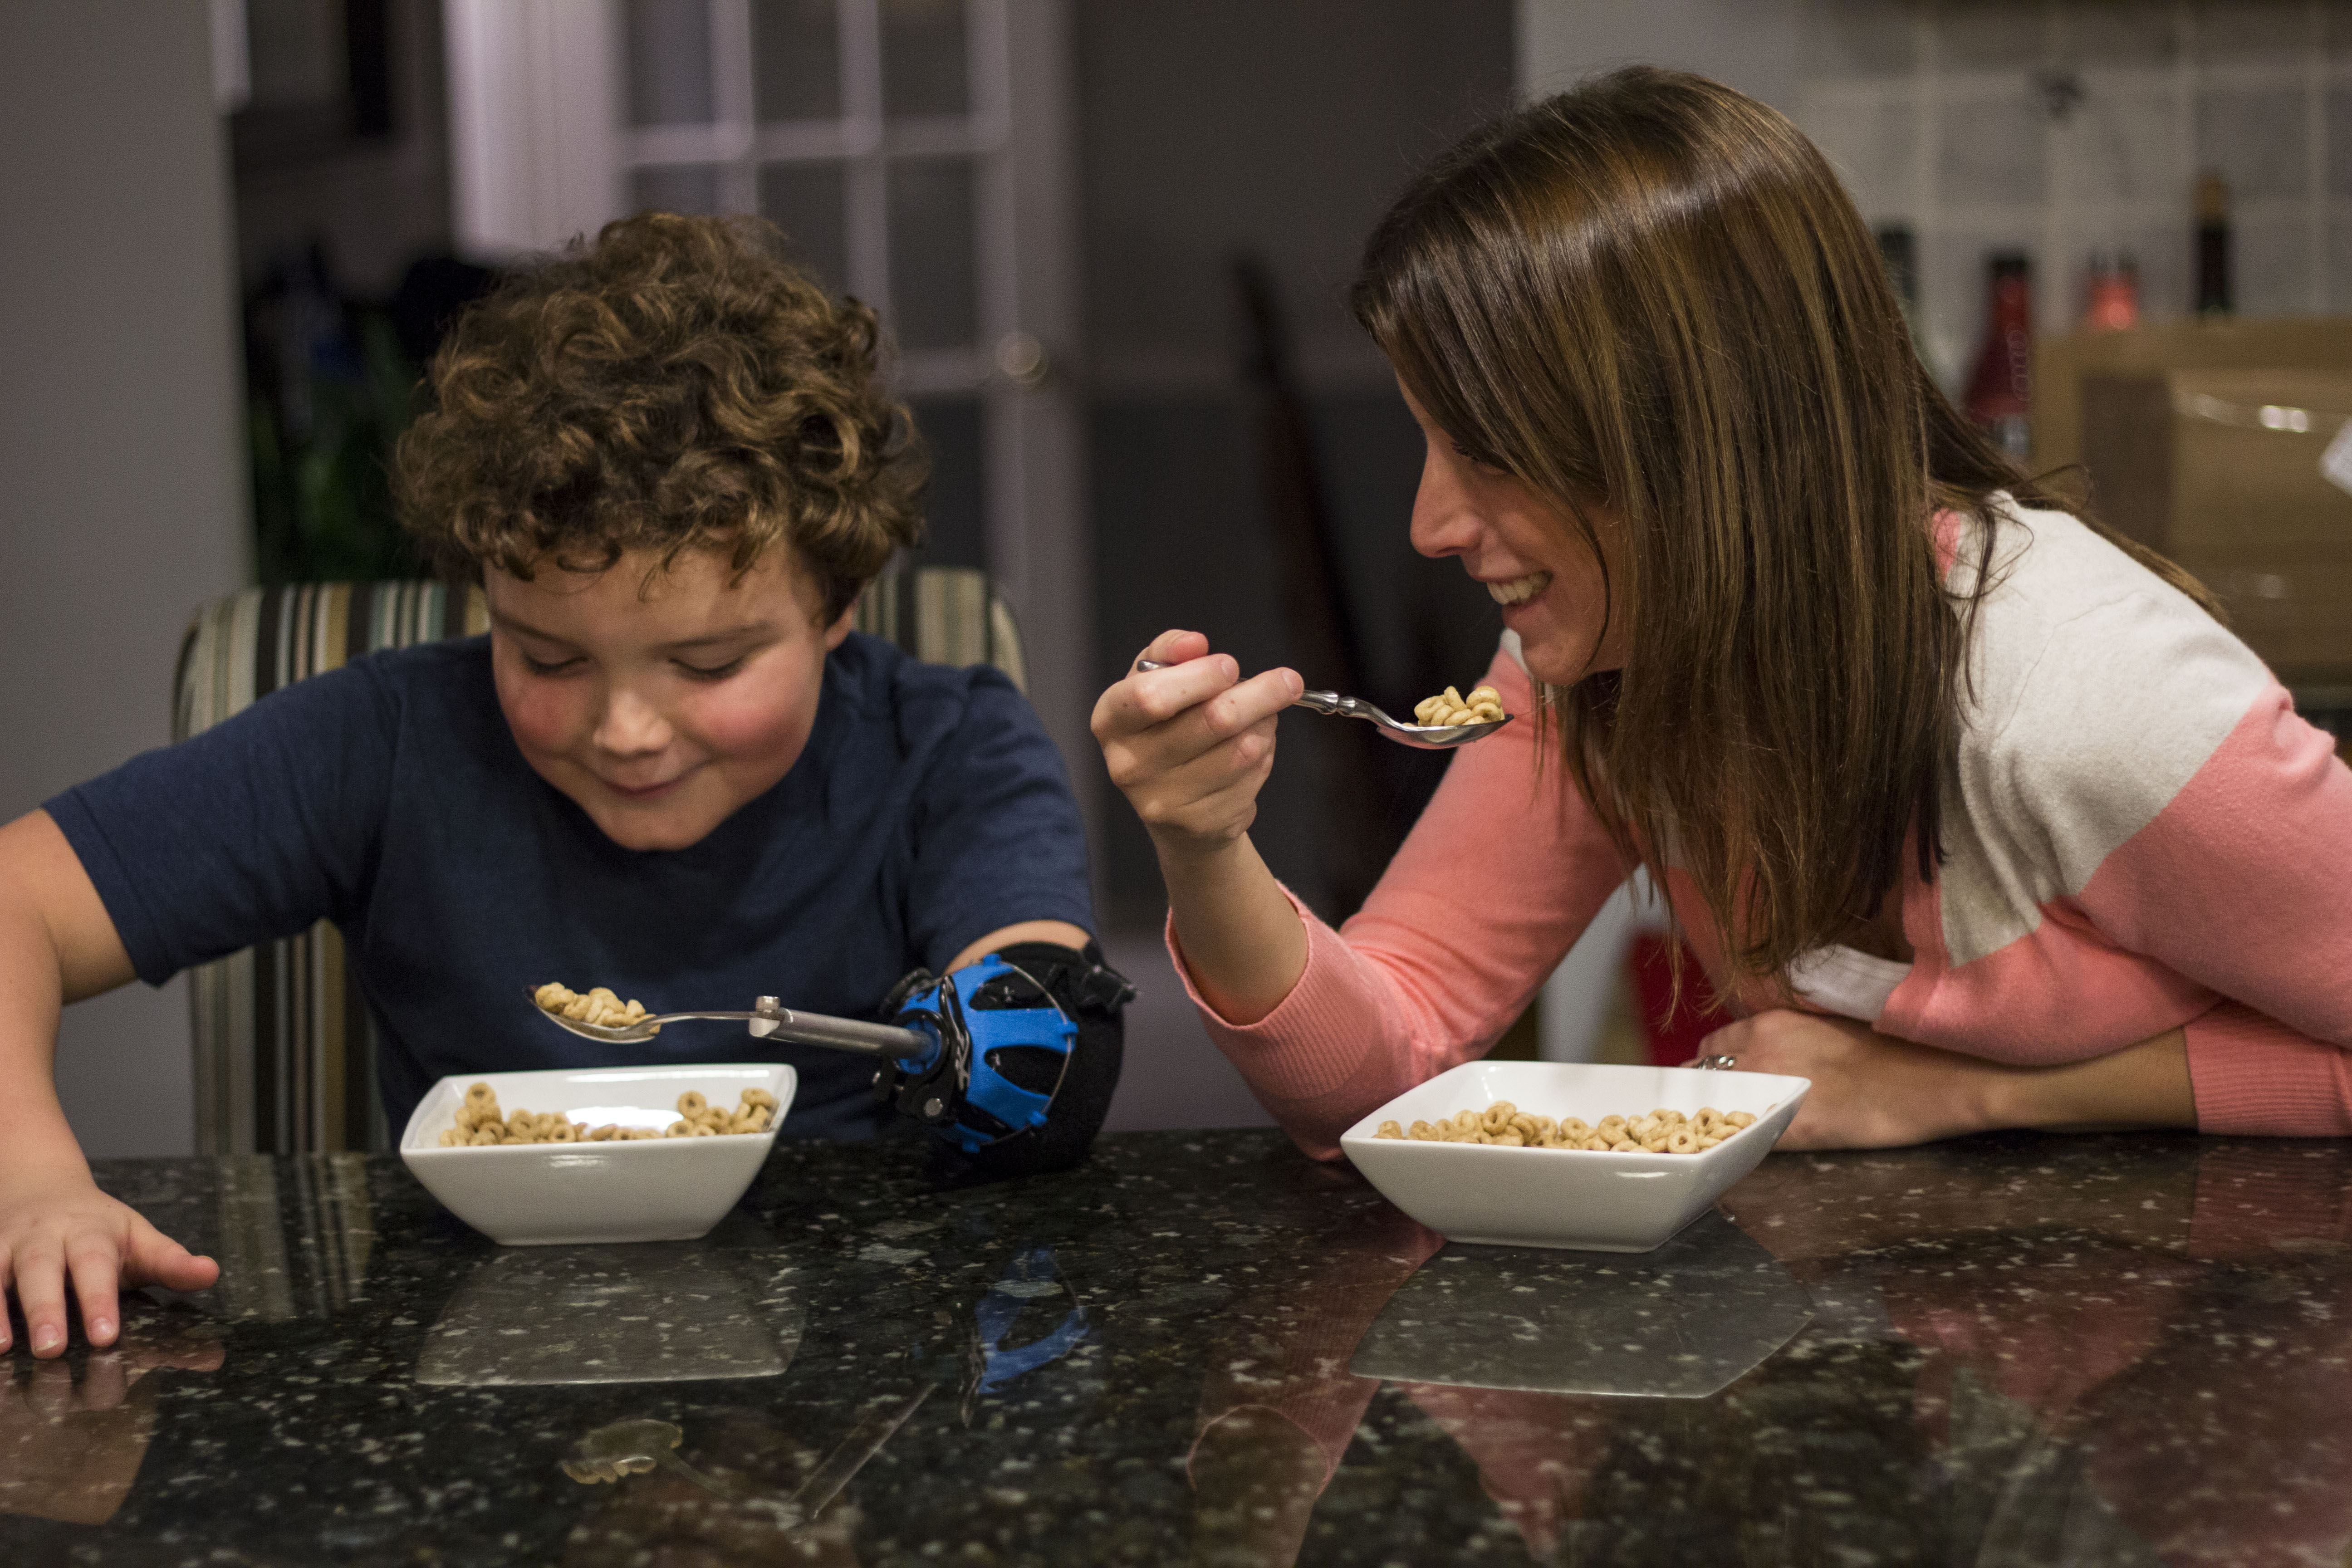 The spoon and fork attachments allow Aidan to eat more effectively.